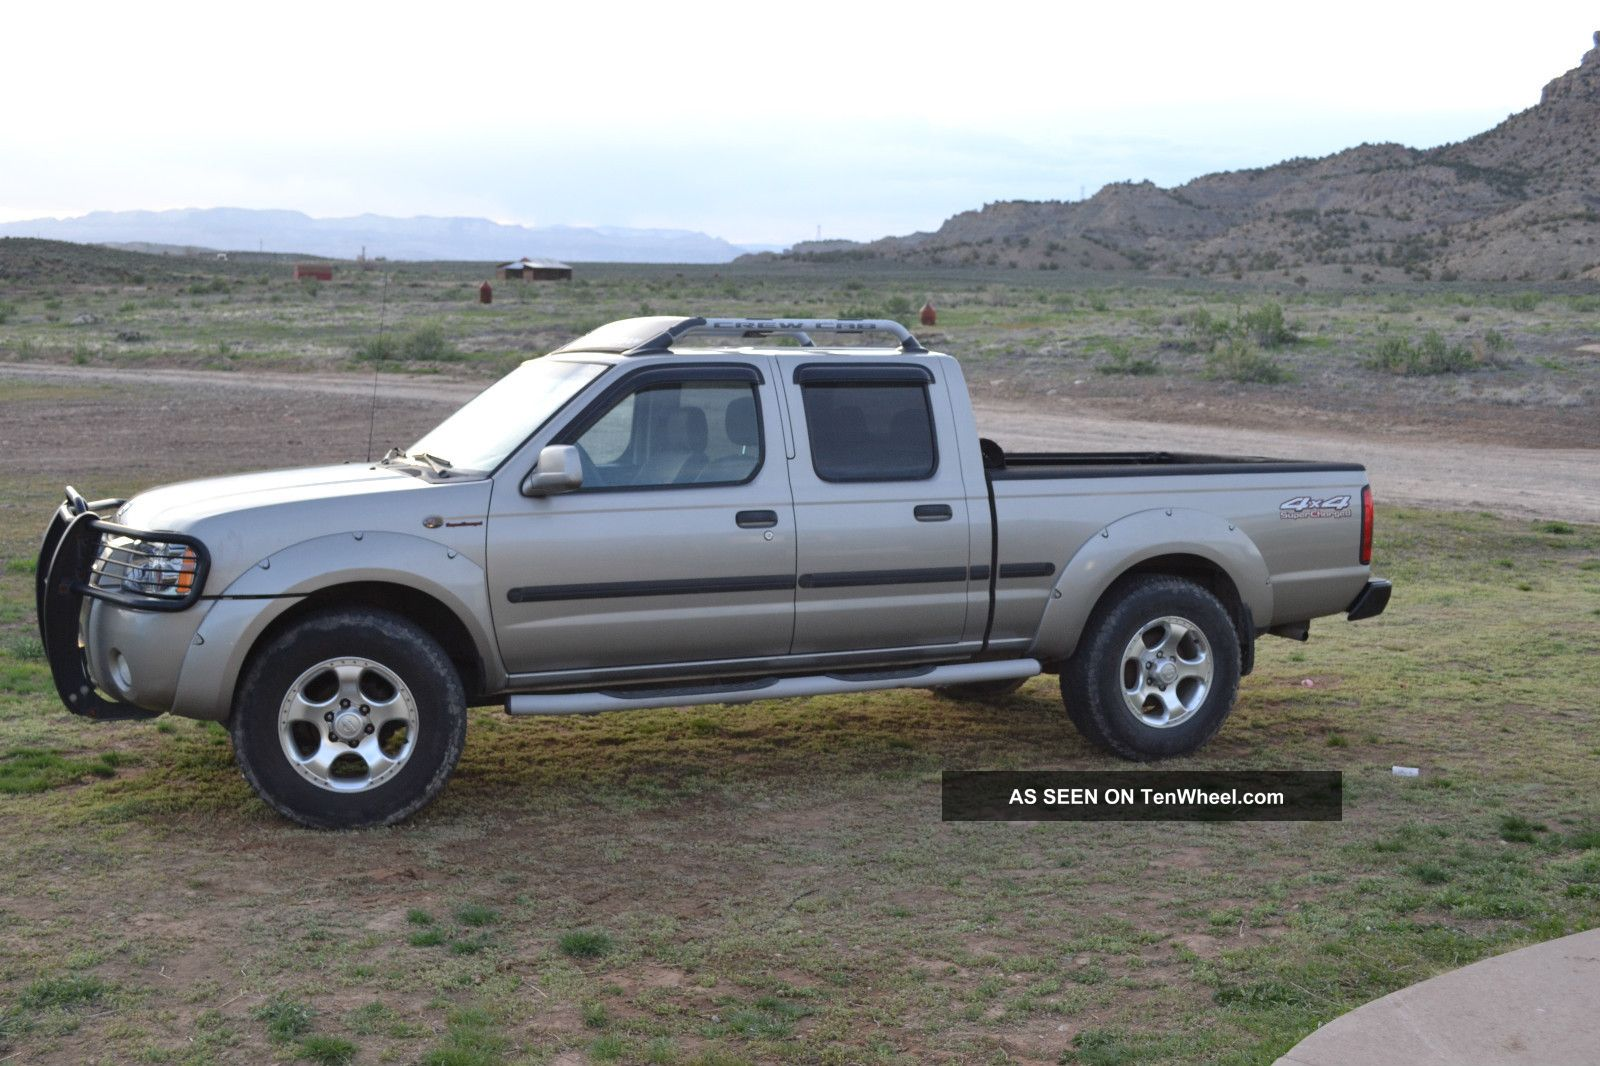 2002 Nissan Frontier Crew Cab Supercharged 4x4 Frontier photo